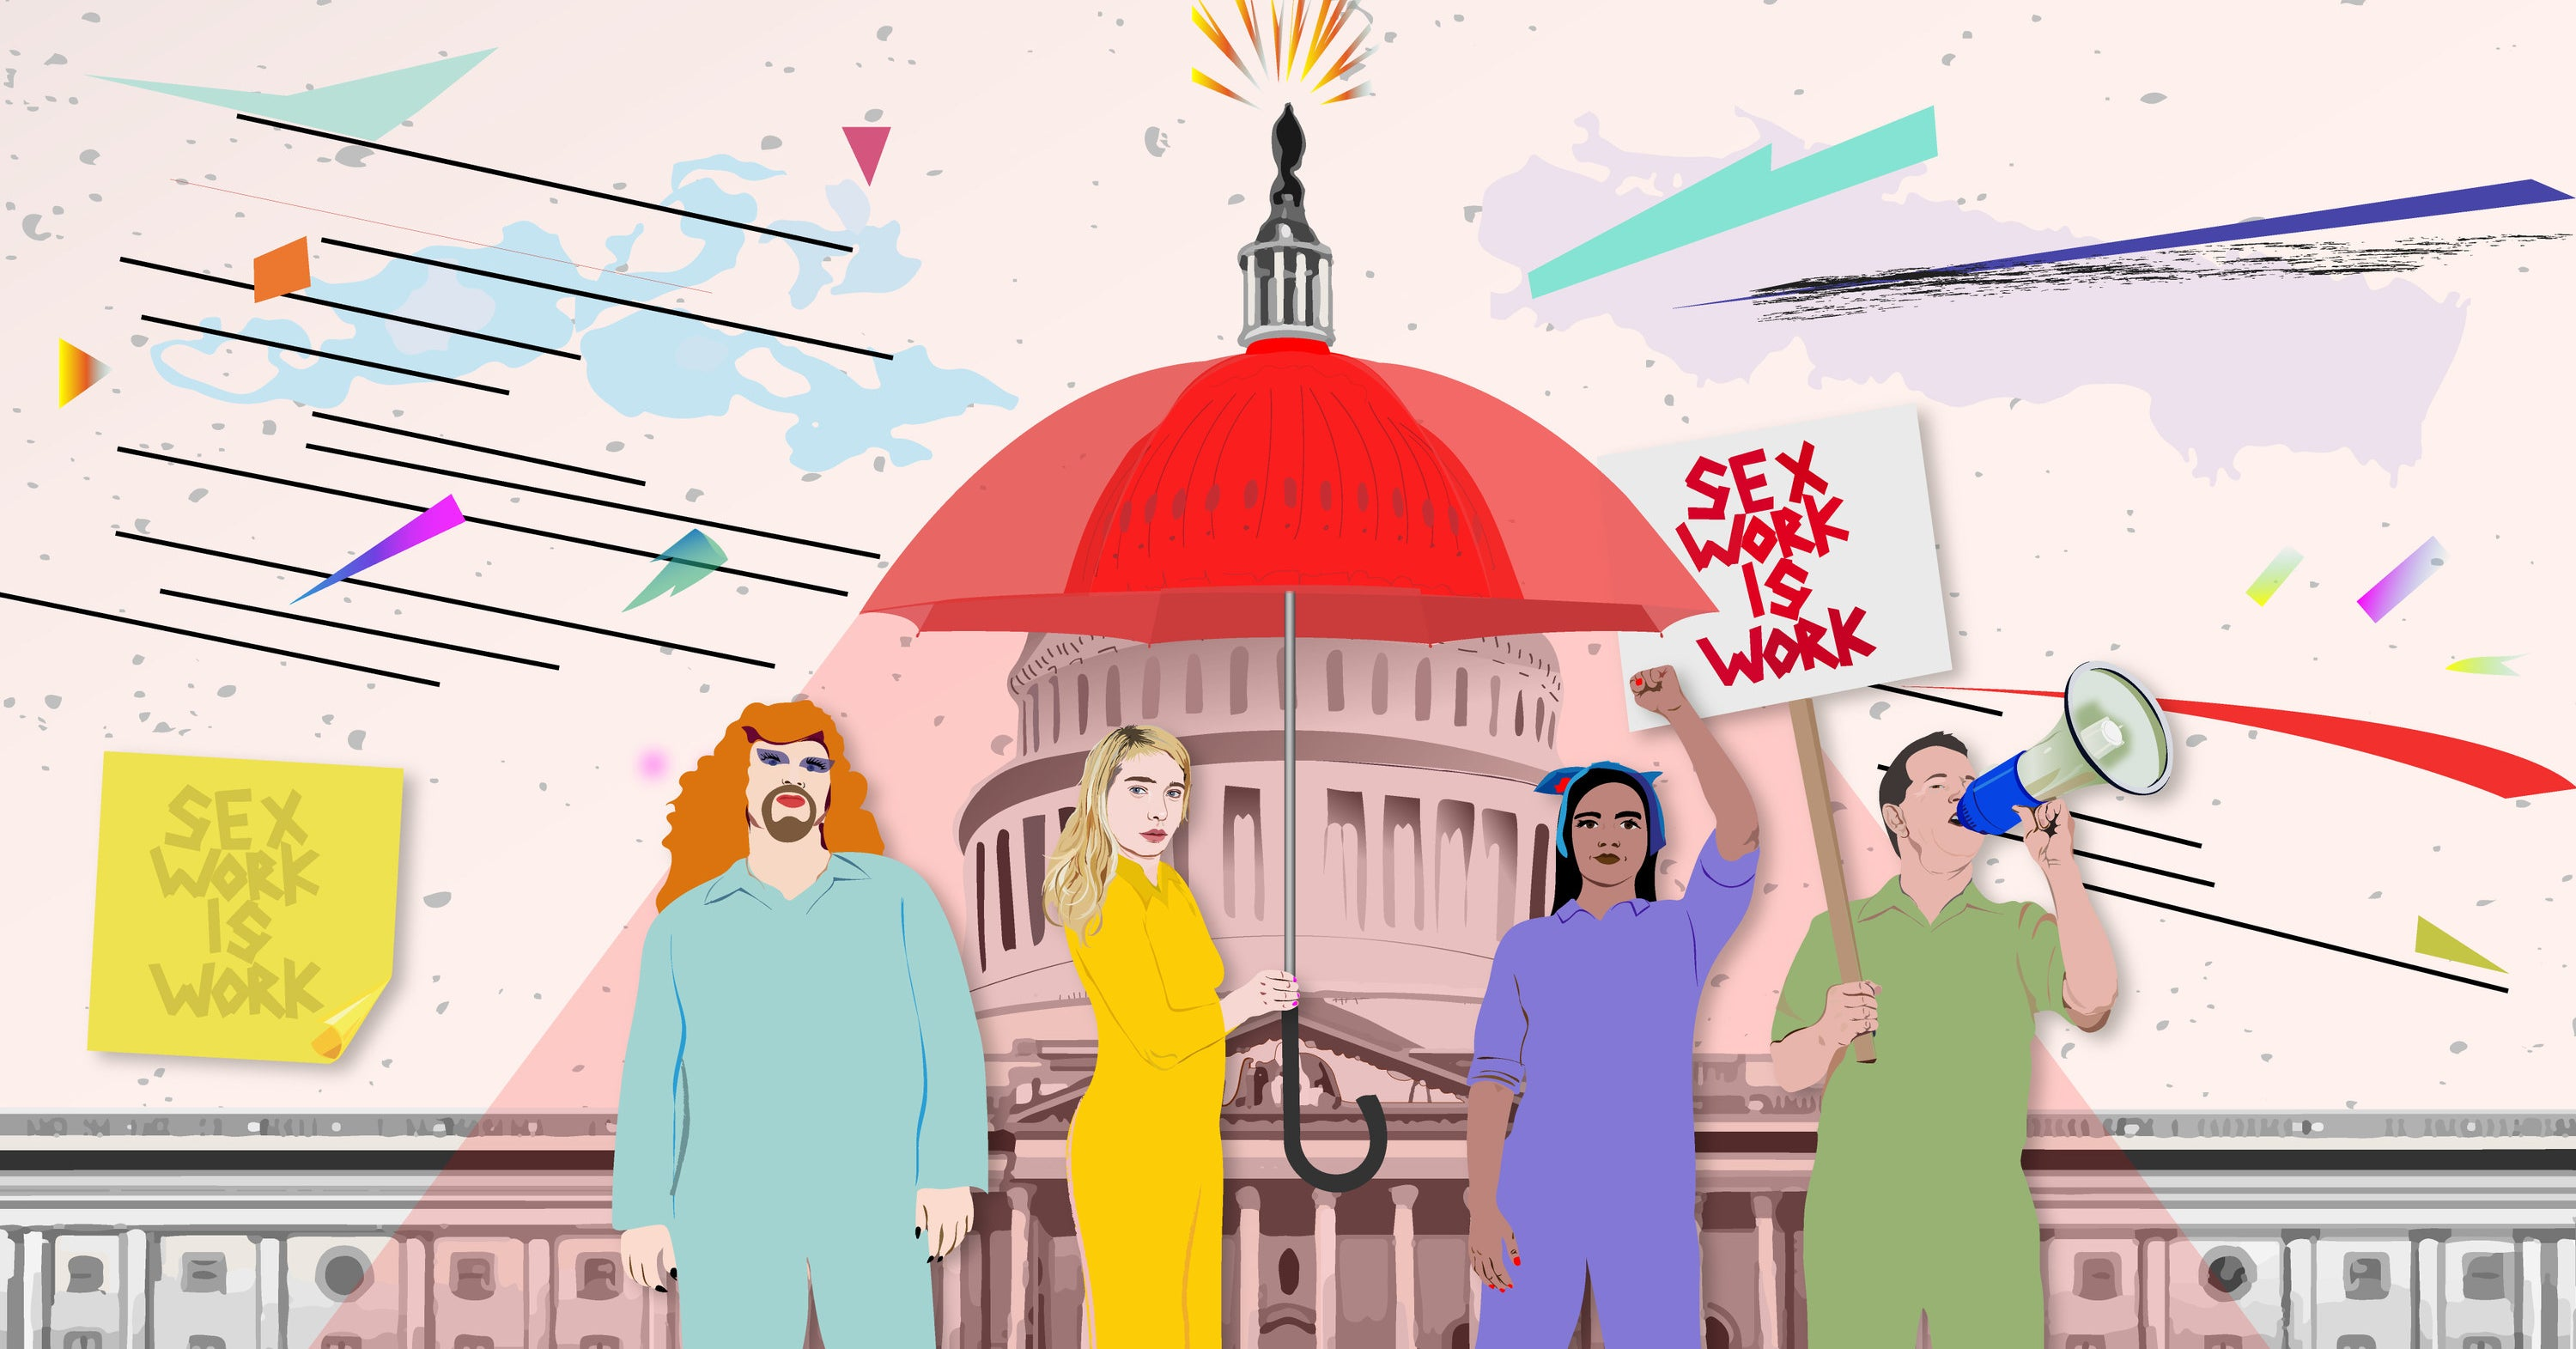 Many Members Of Congress Are Reluctant To Talk About Sex Work. Meet The Lobbyist Trying To Change That.